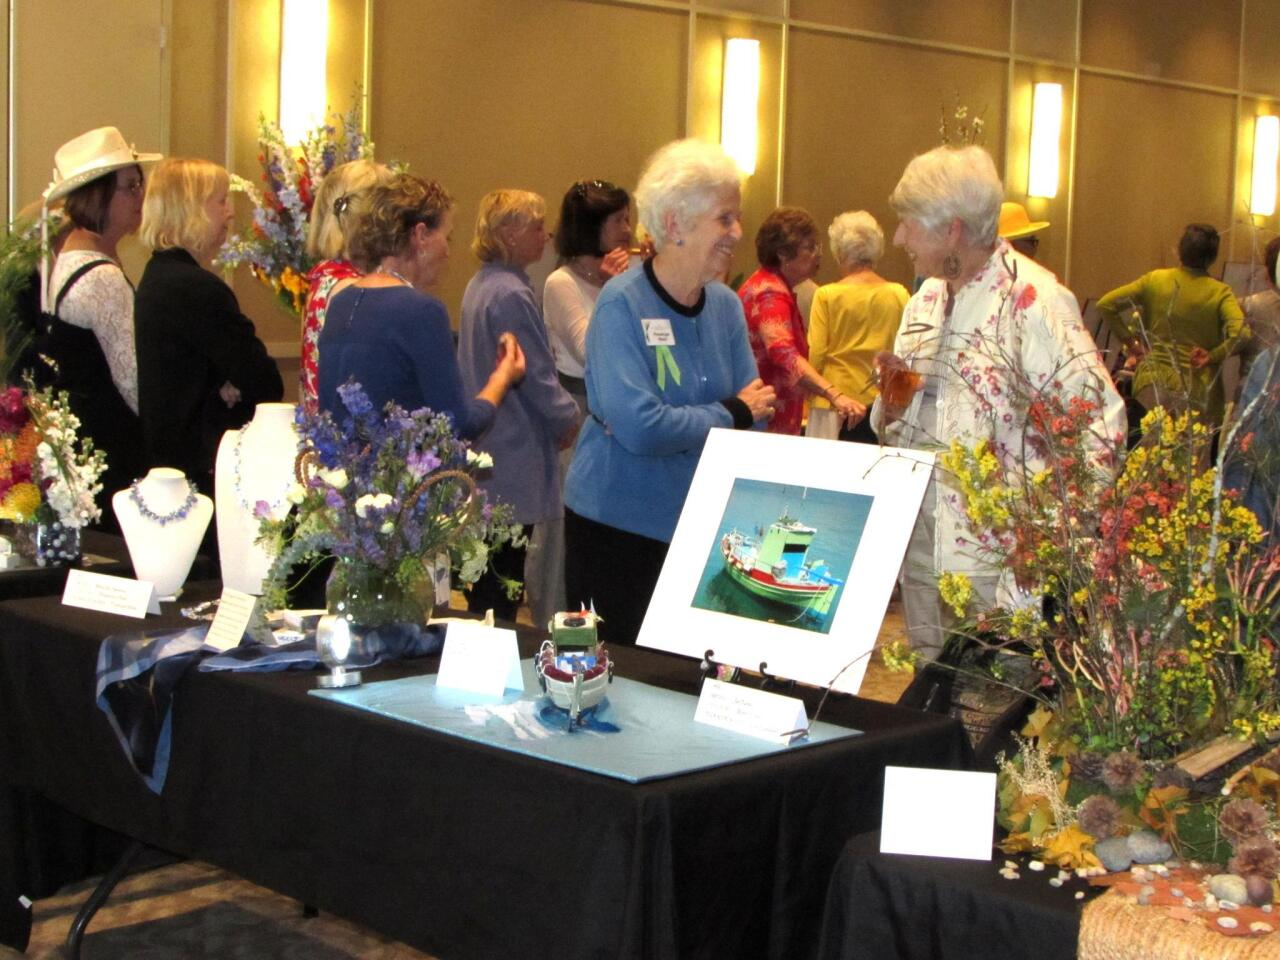 Floral designer Penelope West (left) chats with artist Jan Nelte about their submissions to 'Expresssions in Art and Flowers' 2017.